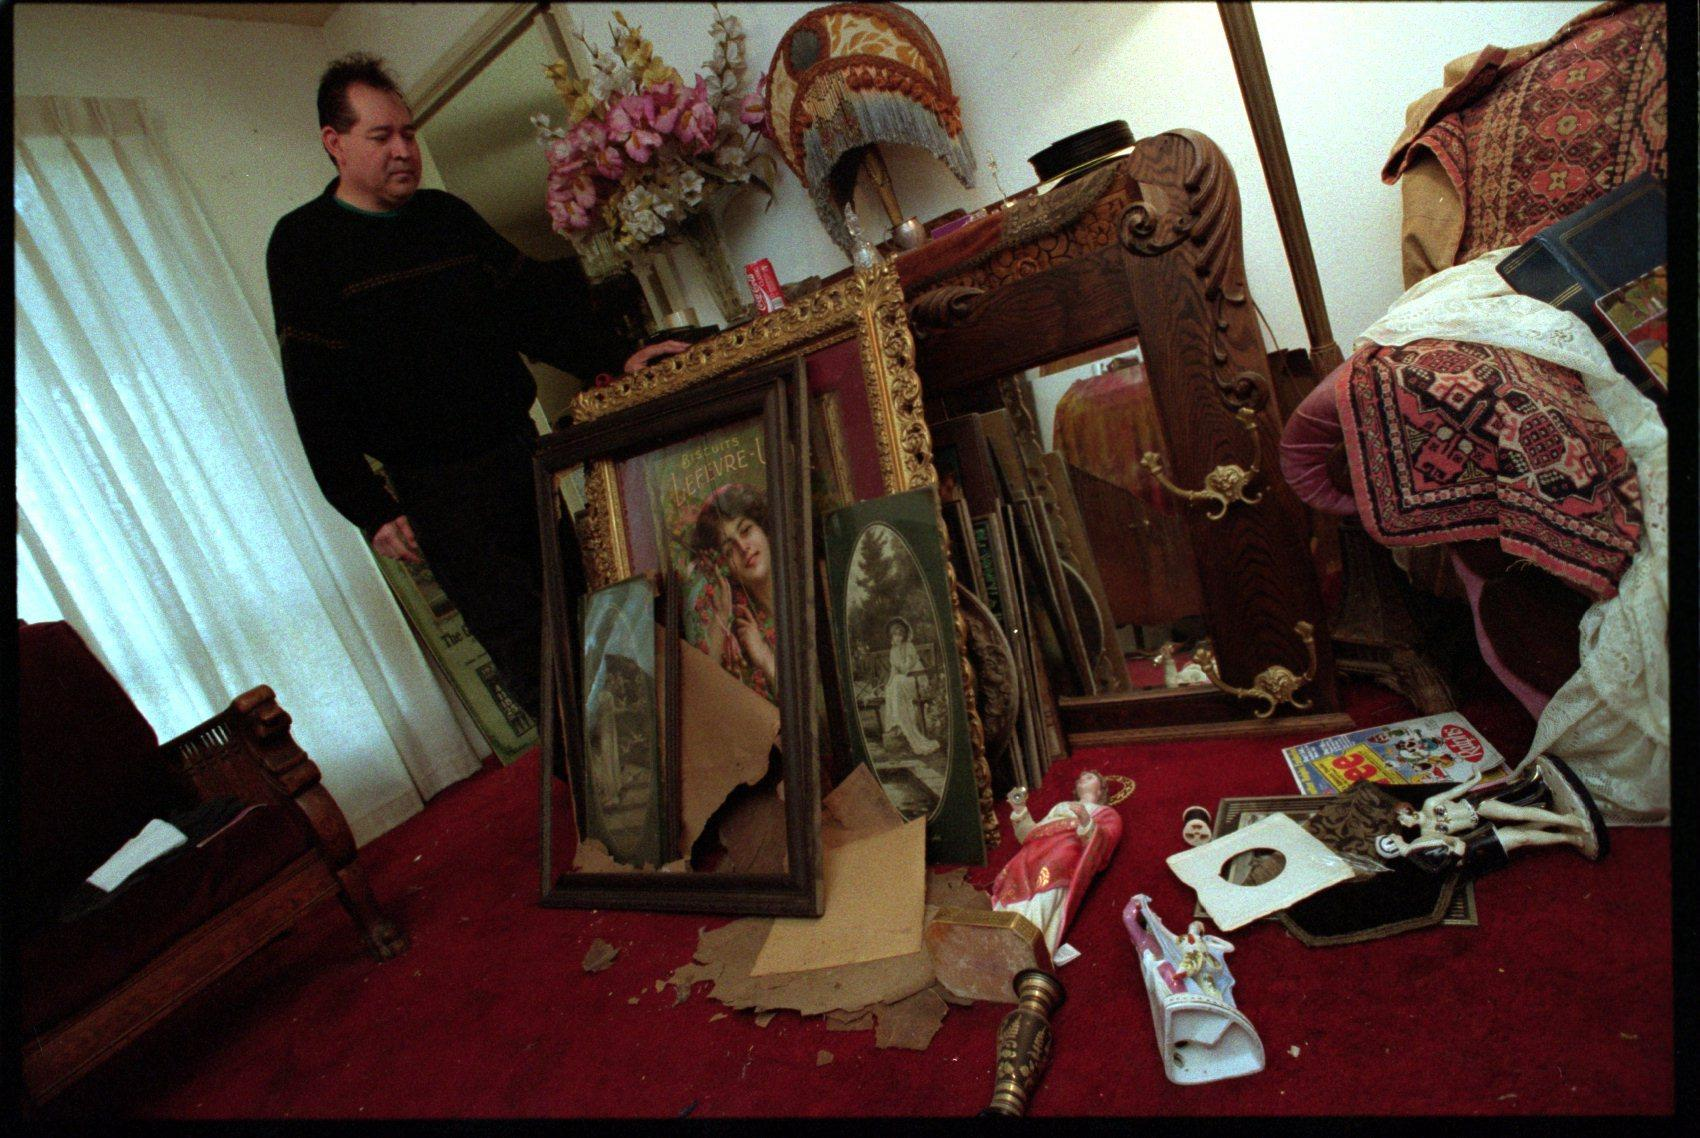 Rick Olguin of Lake View Terrace stands next to rare Victorian paintings from his collection after the 1994 Northridge earthquake. About 50 were damaged in the quake.